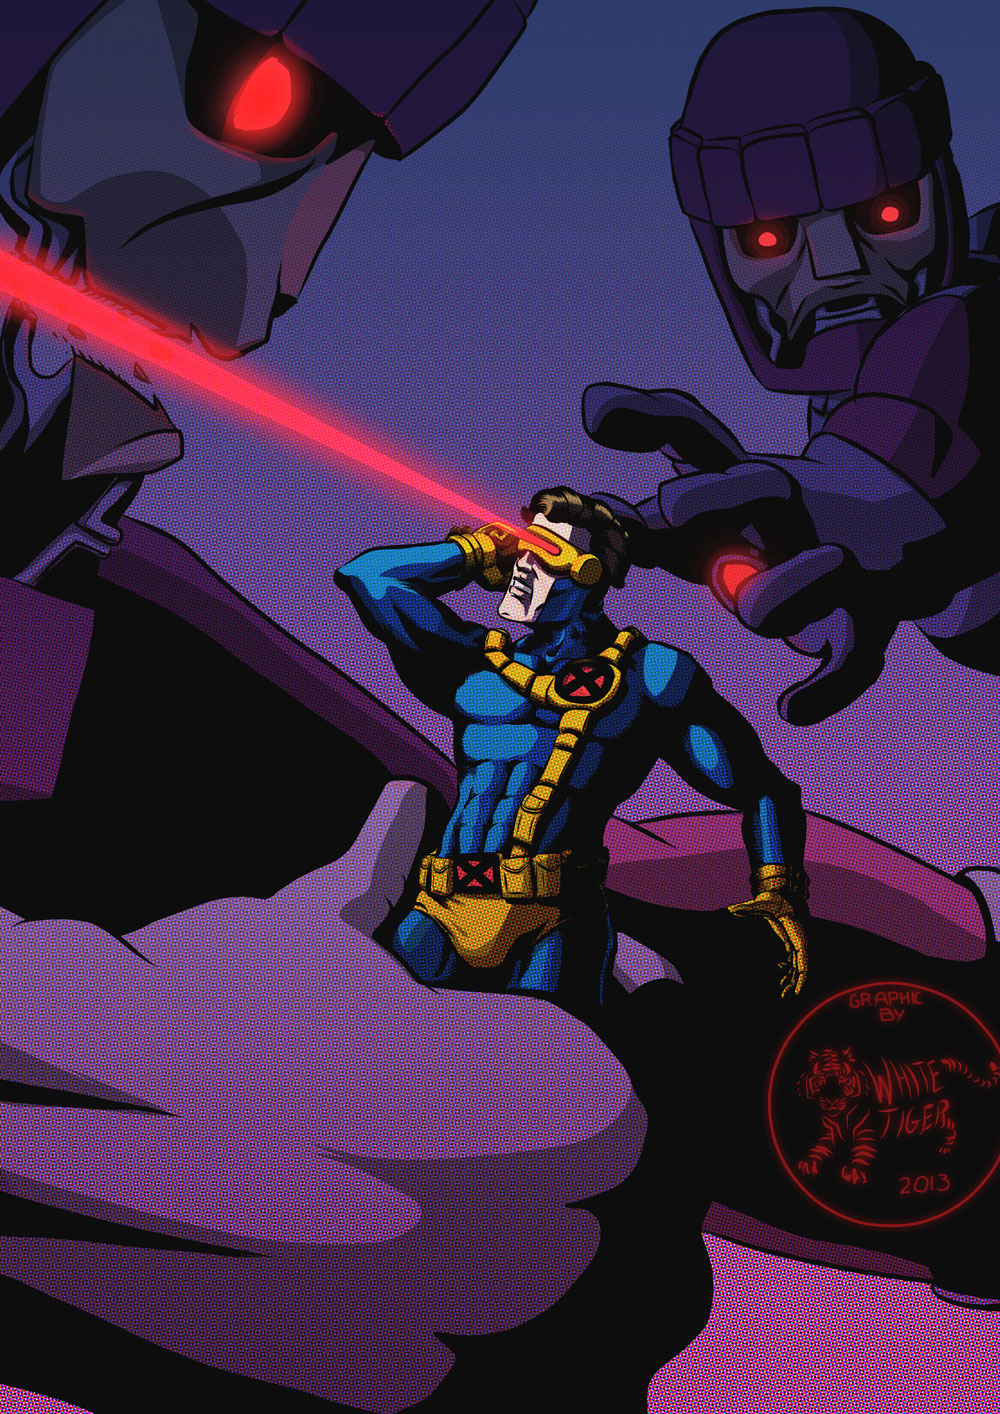 Cyclops vs Sentinels